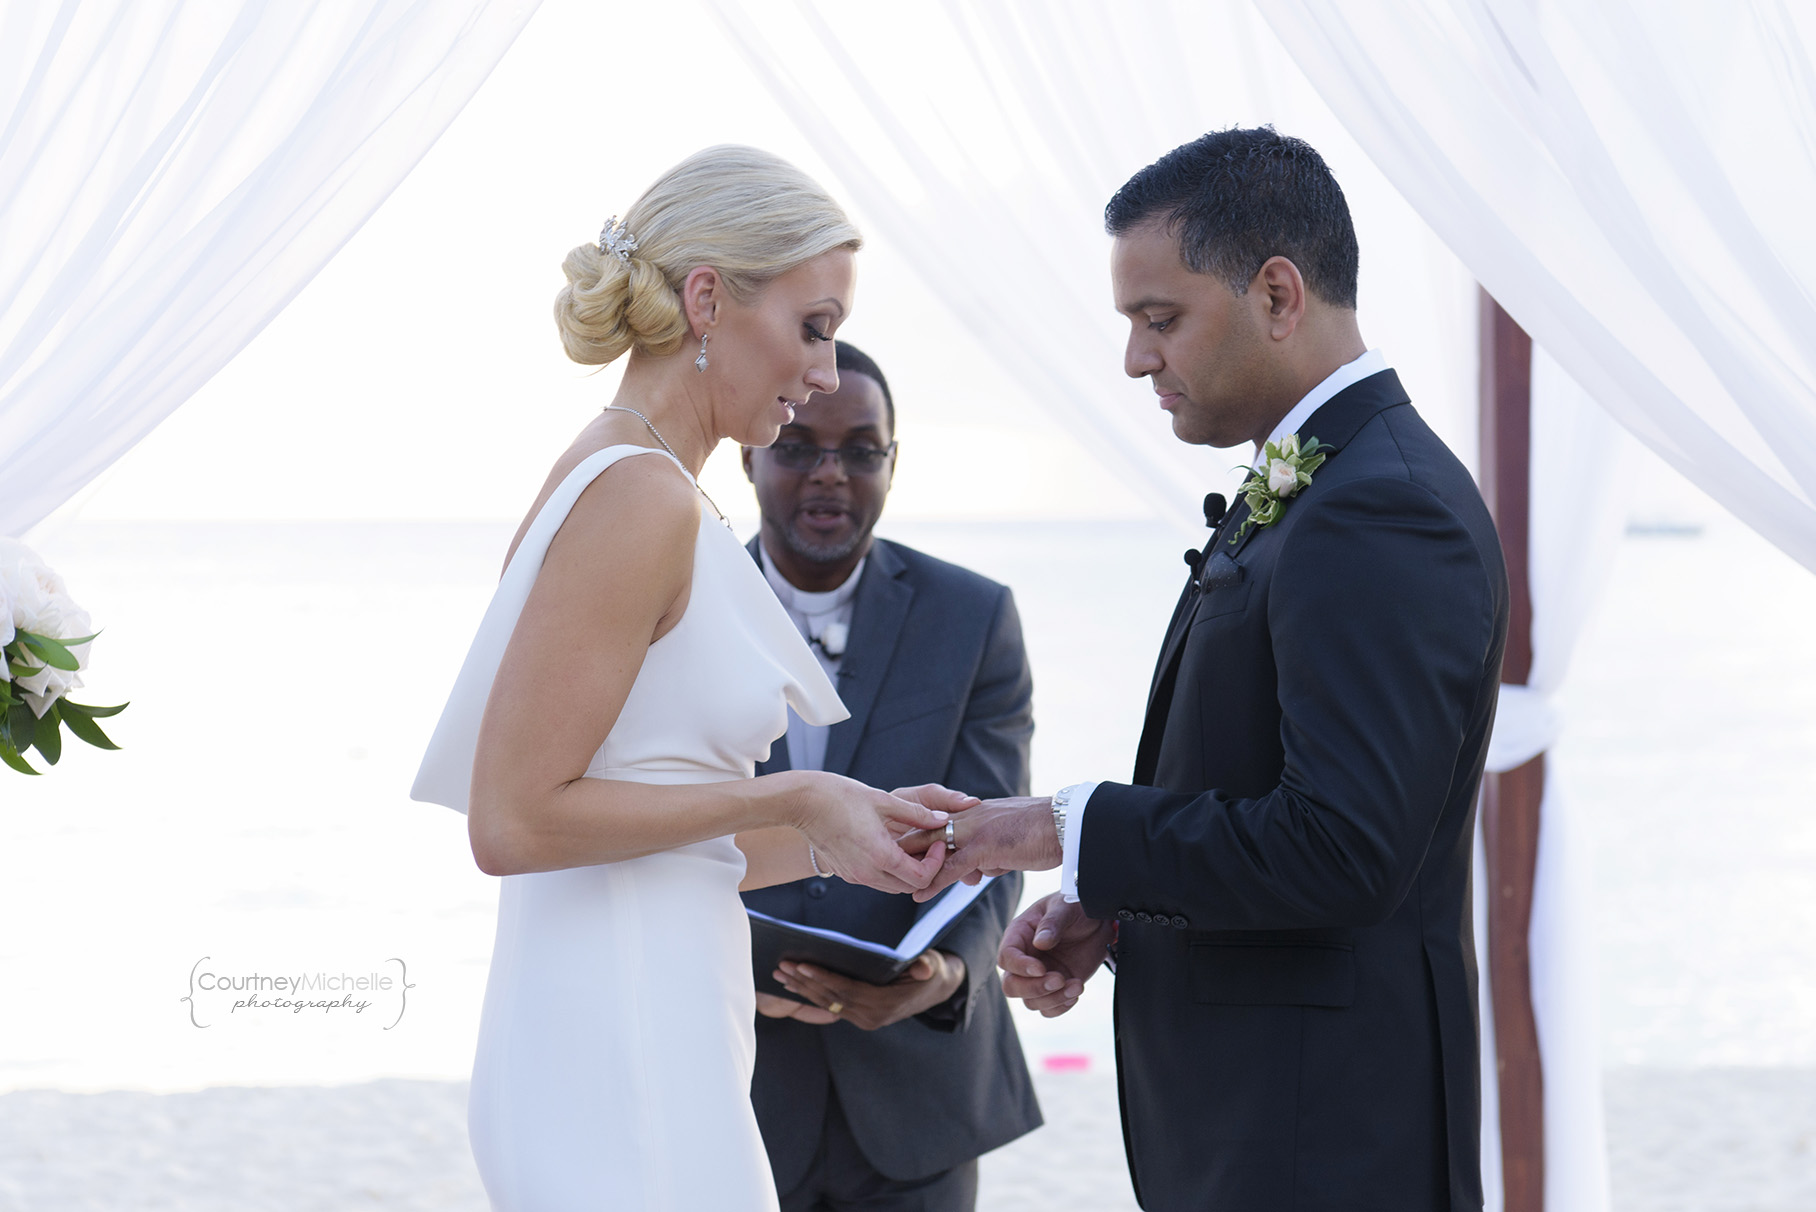 ring-exchange-grand-cayman-beach-wedding-photography-by-courtney-laper©CopyrightCMP-LeaAnneRaj-7764.jpg